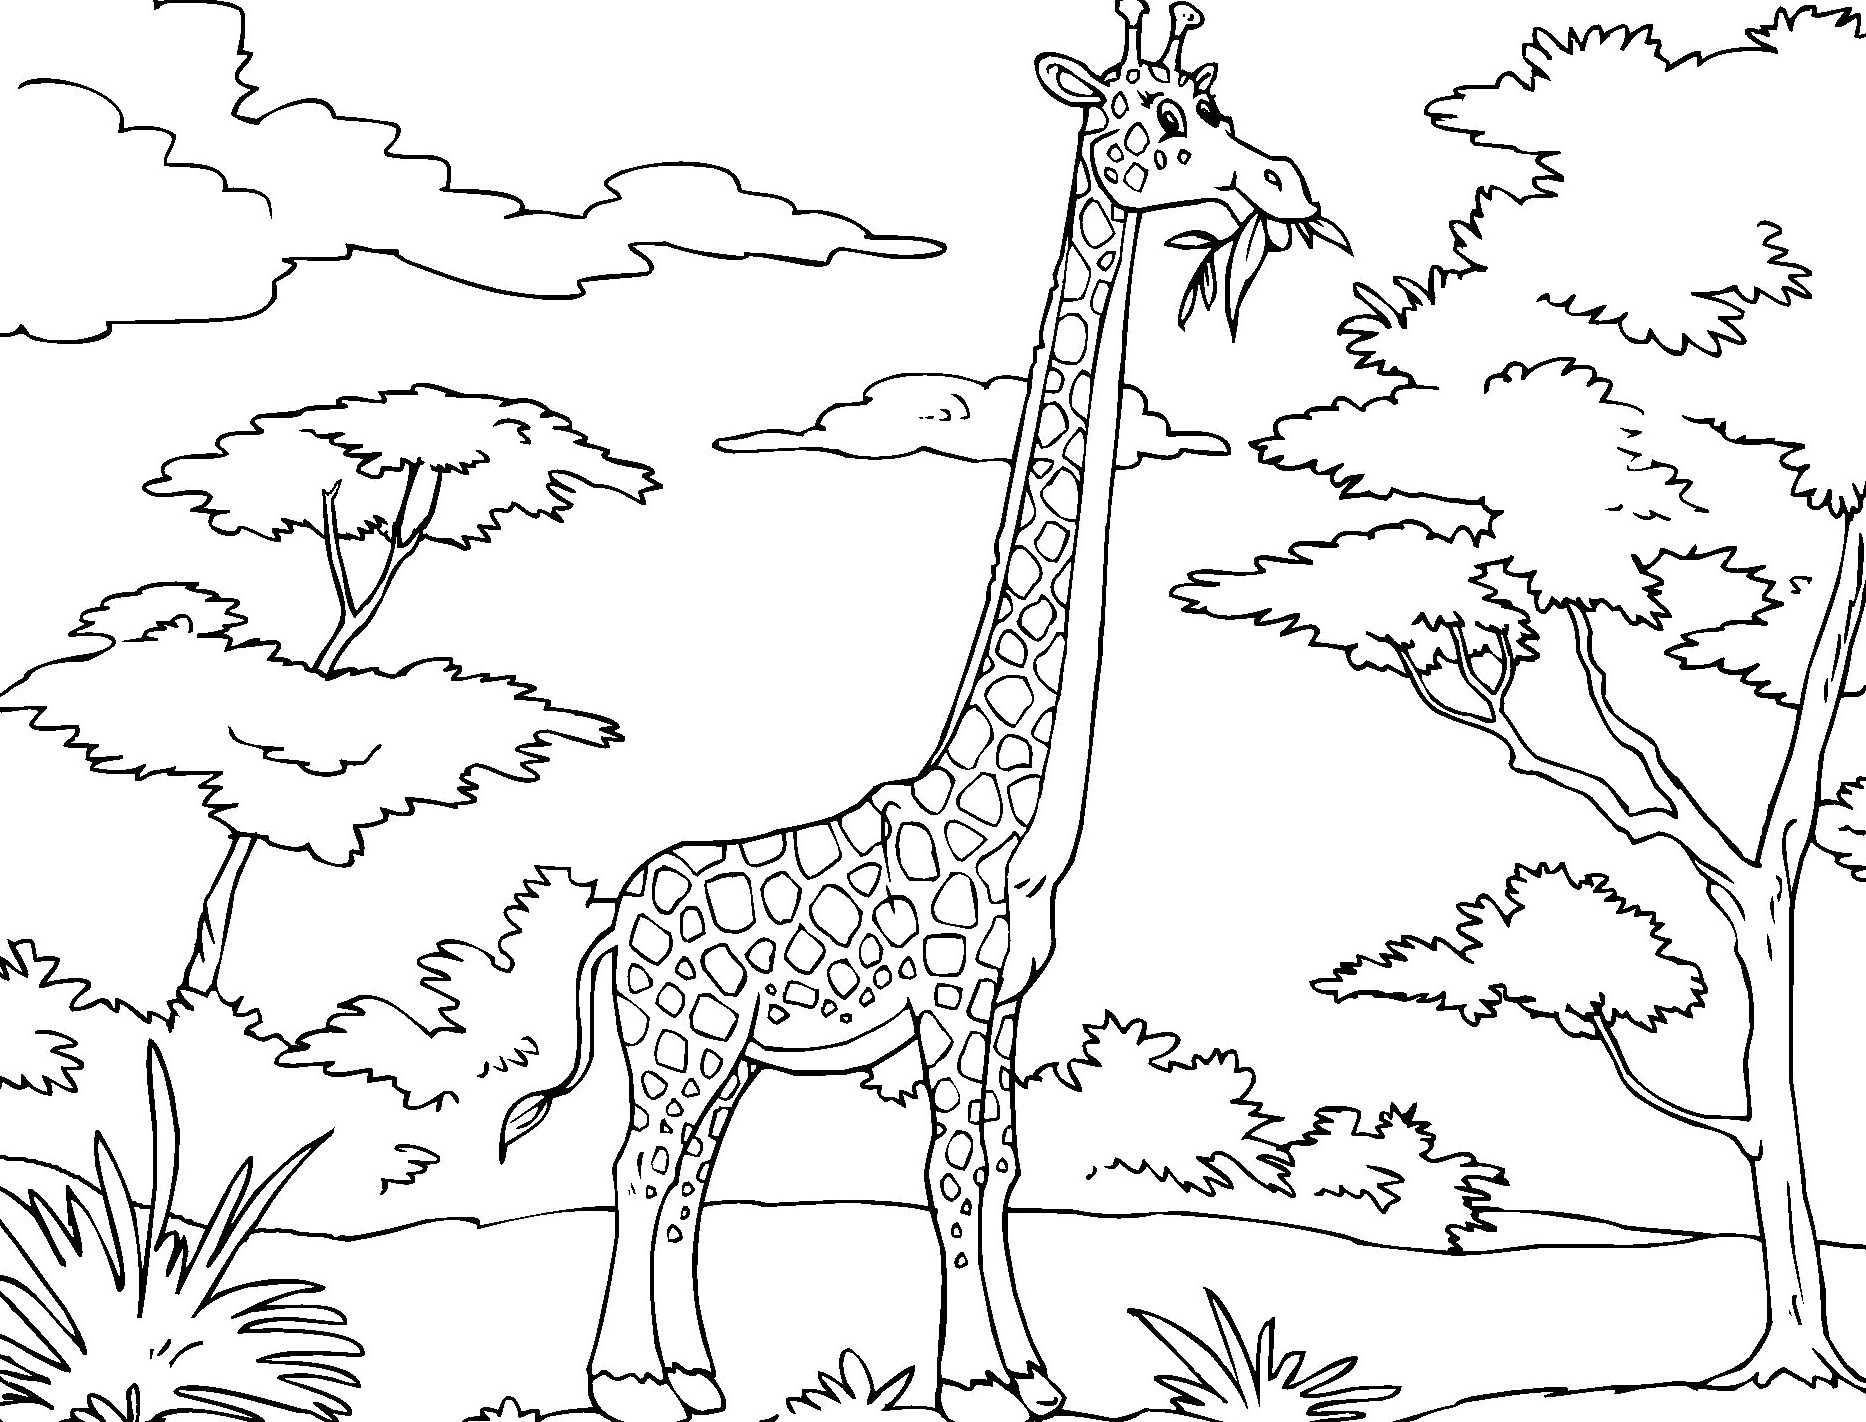 Giraffe Outline Drawing At Getdrawings Free For Personal Use